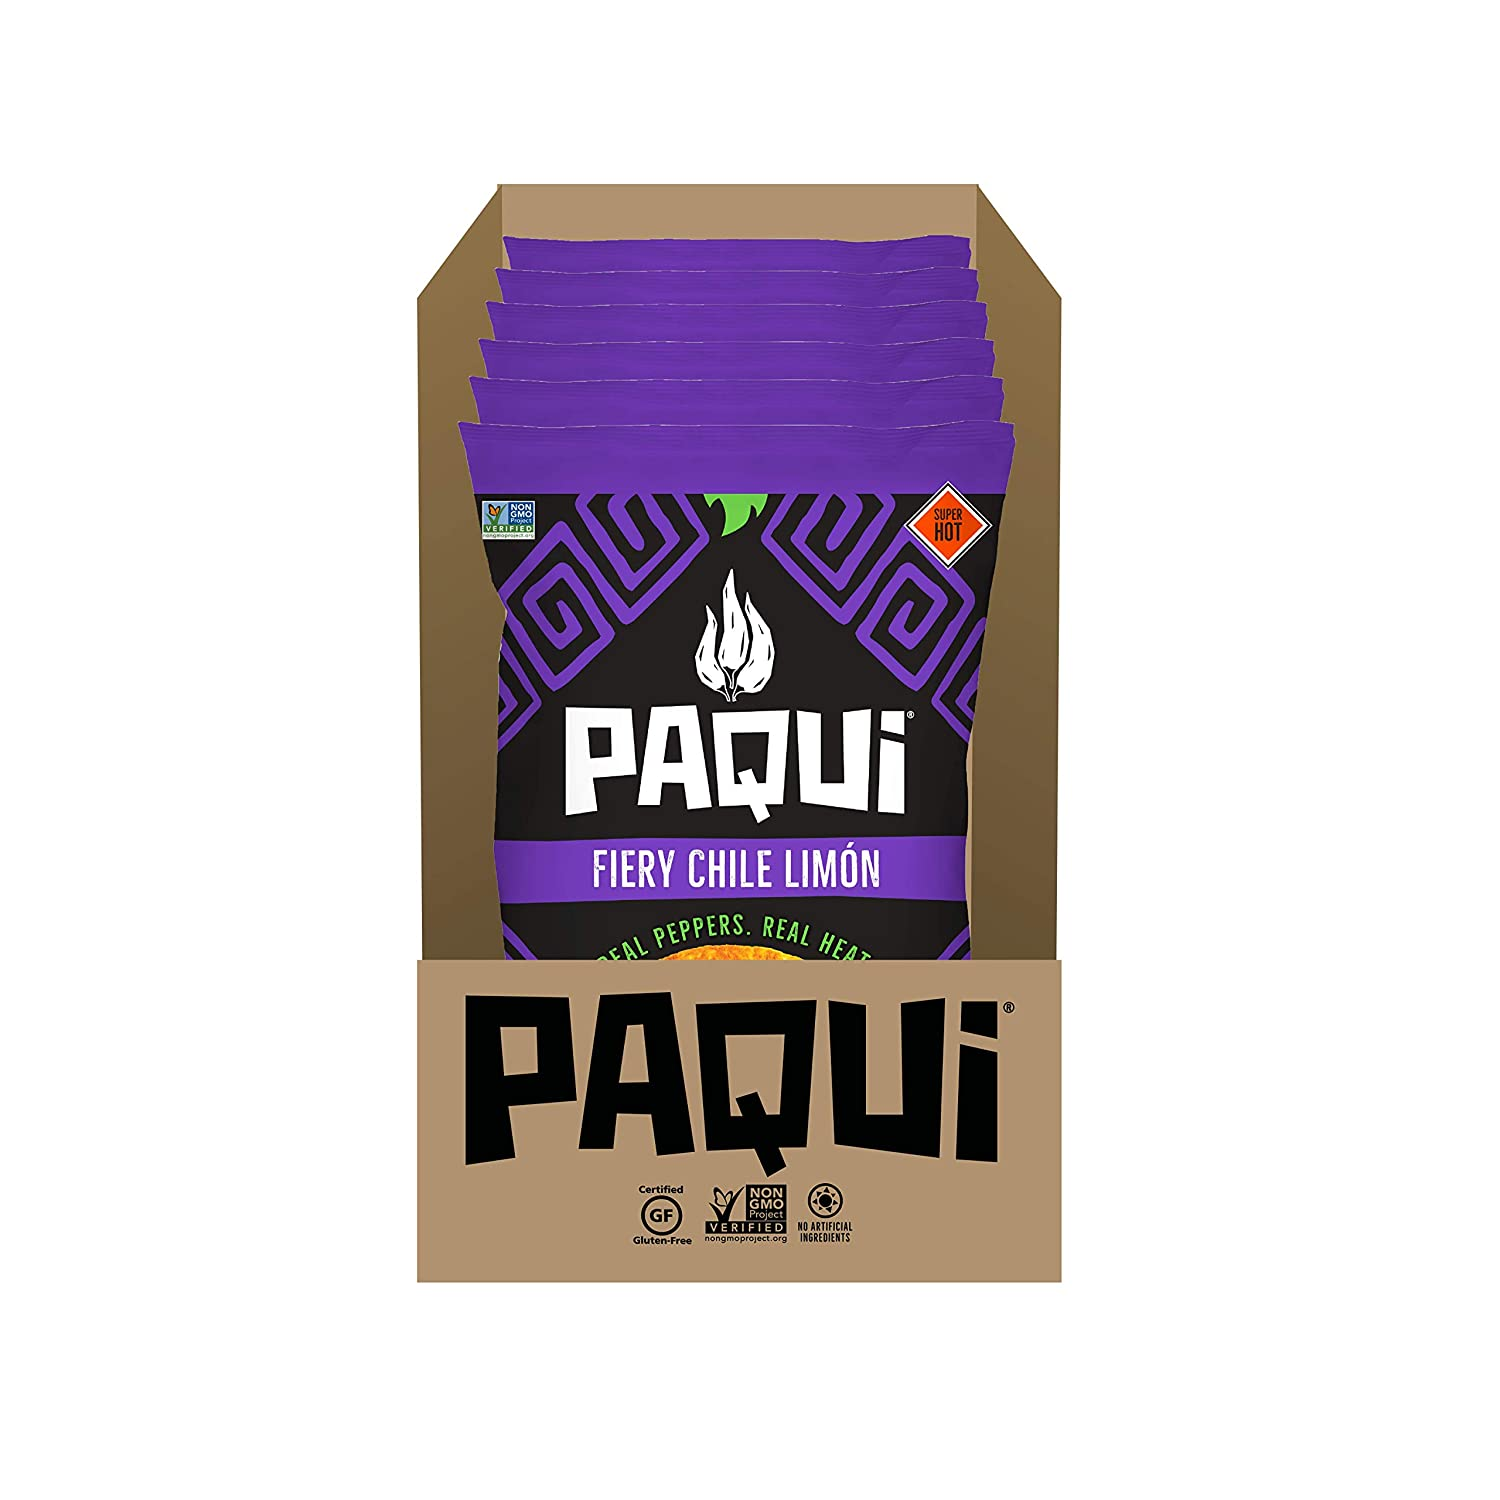 Paqui Fiery Chile Limón Spicy Tortilla Chips, 6ct, 2oz Individual Snack Sized Bags